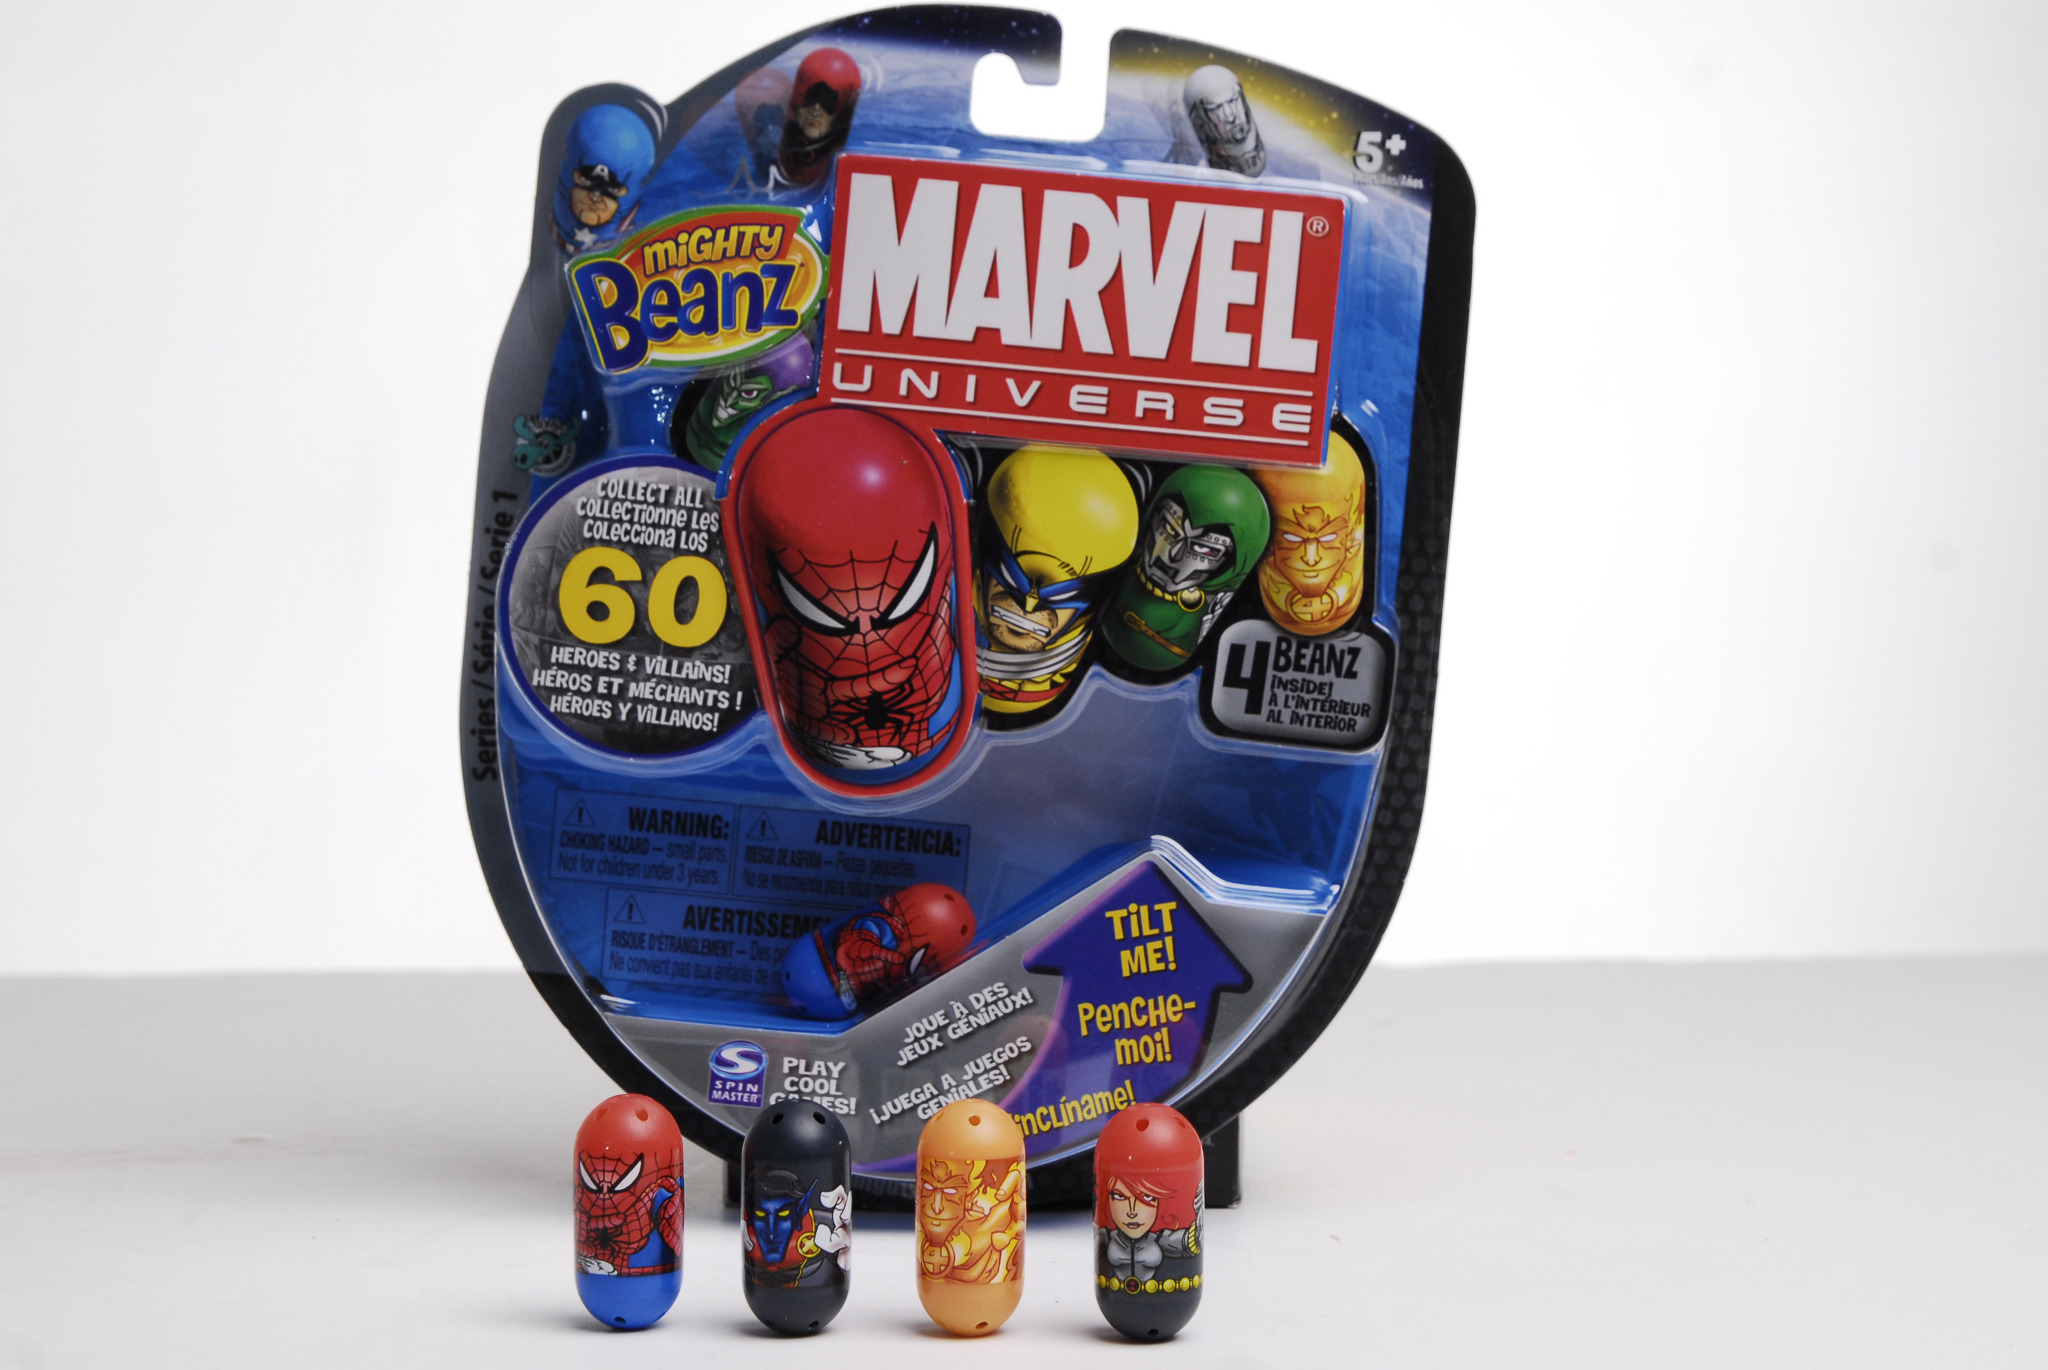 Marvel Mighty Beanz